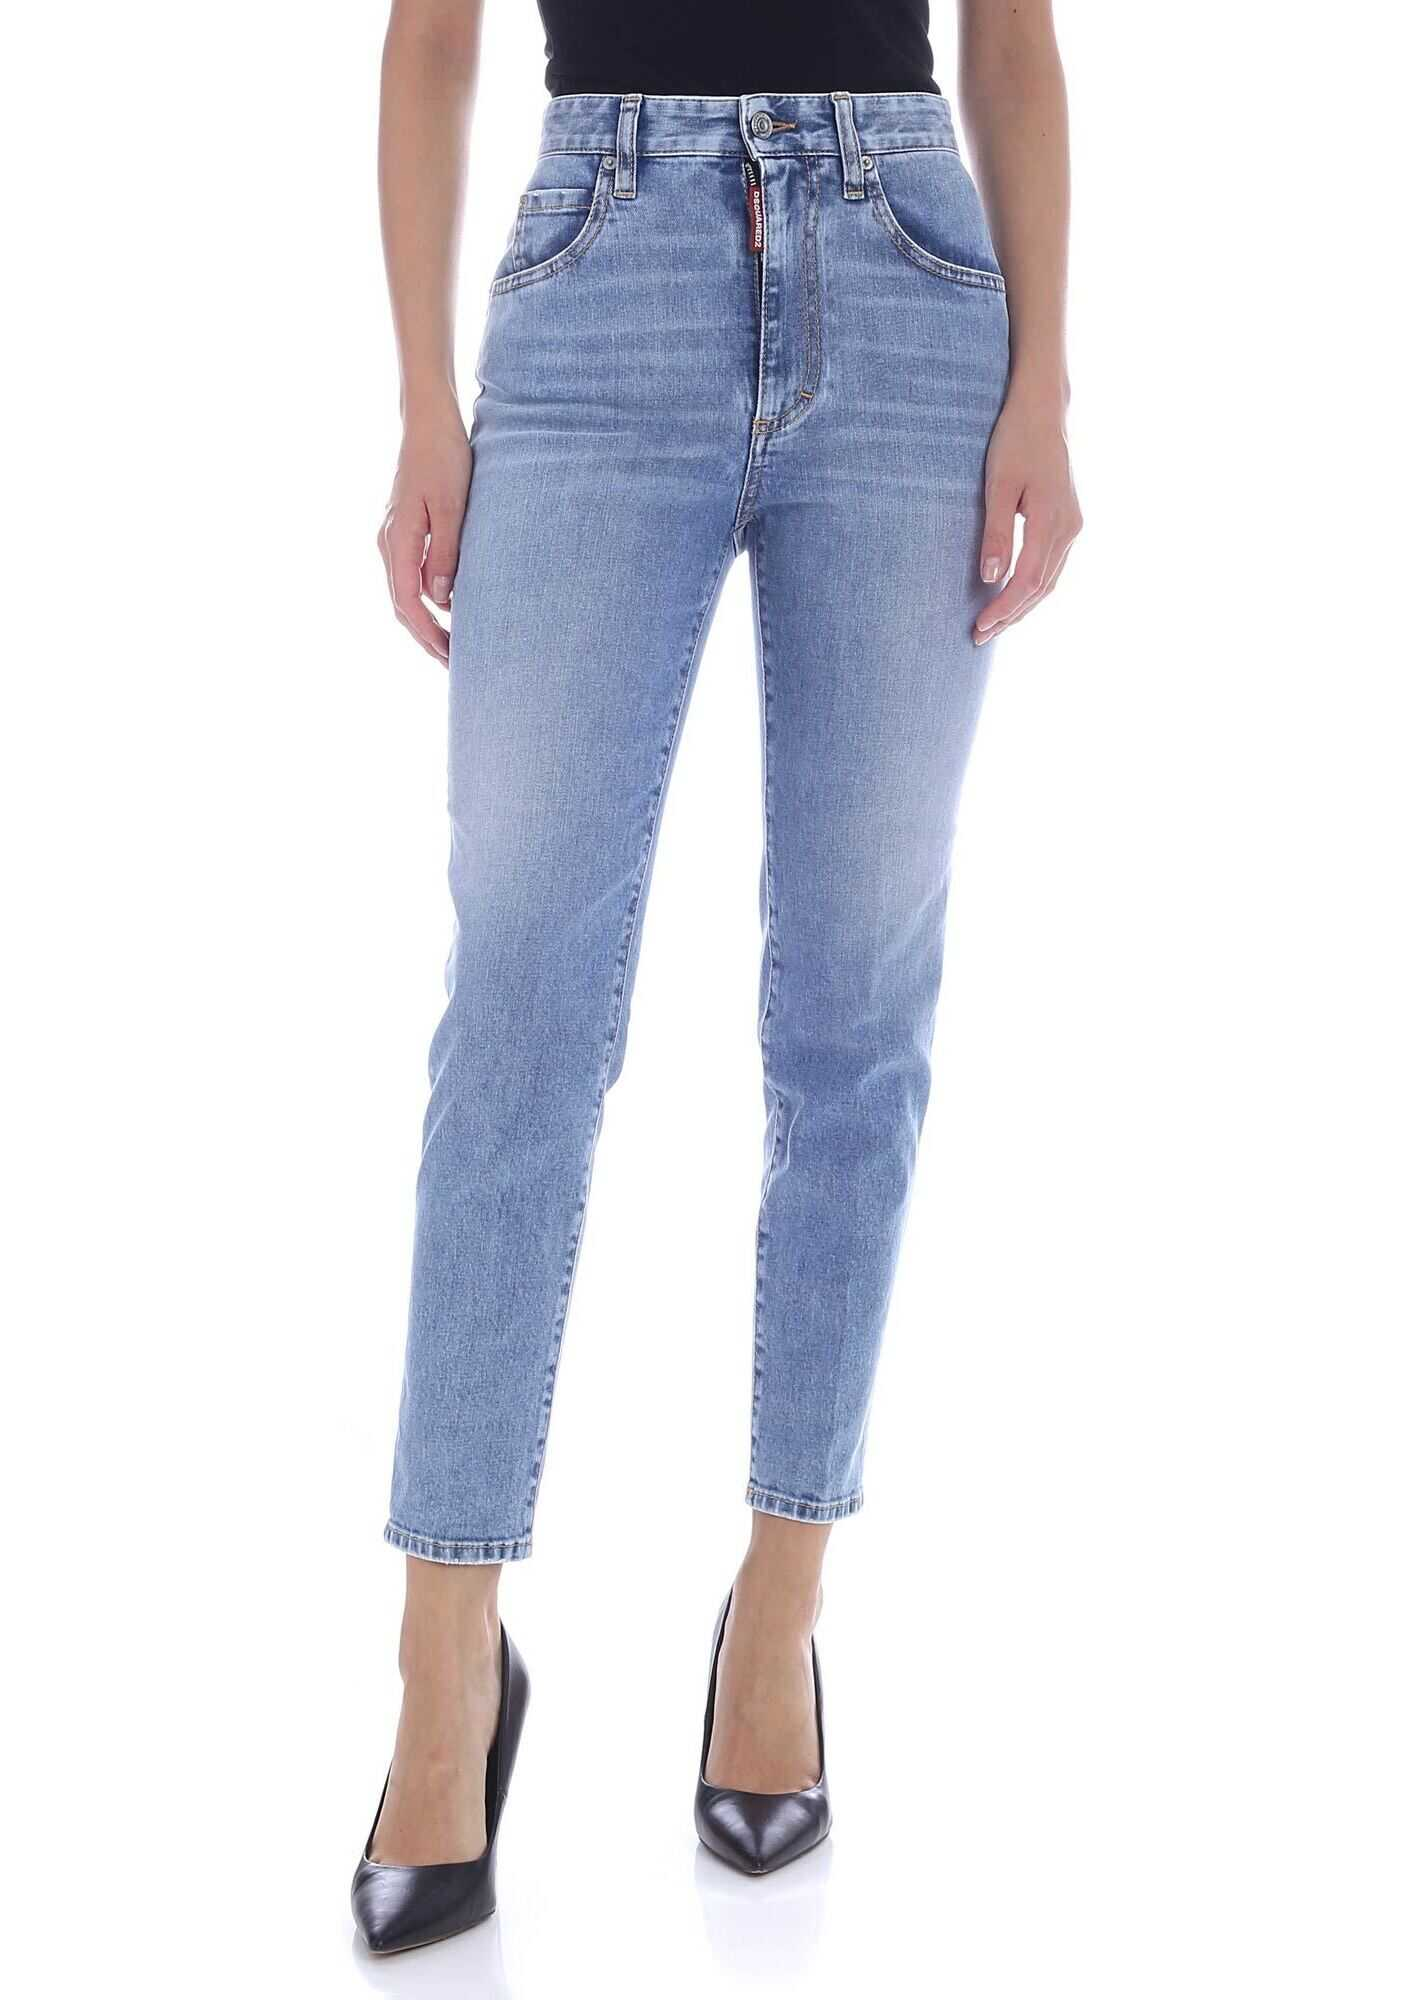 DSQUARED2 Twiggy Jeans In Blue Blue